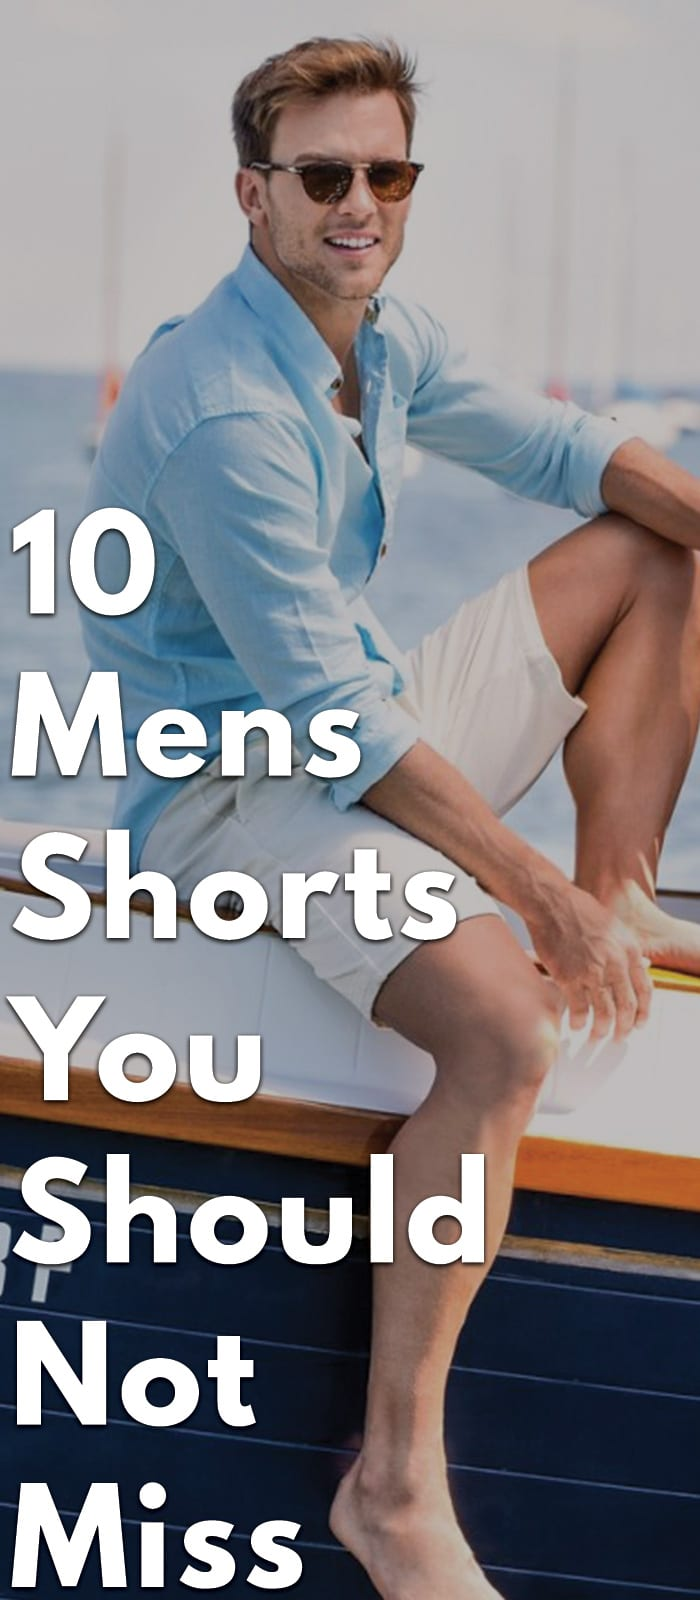 10-Mens-Shorts-You-Should-Not-Miss